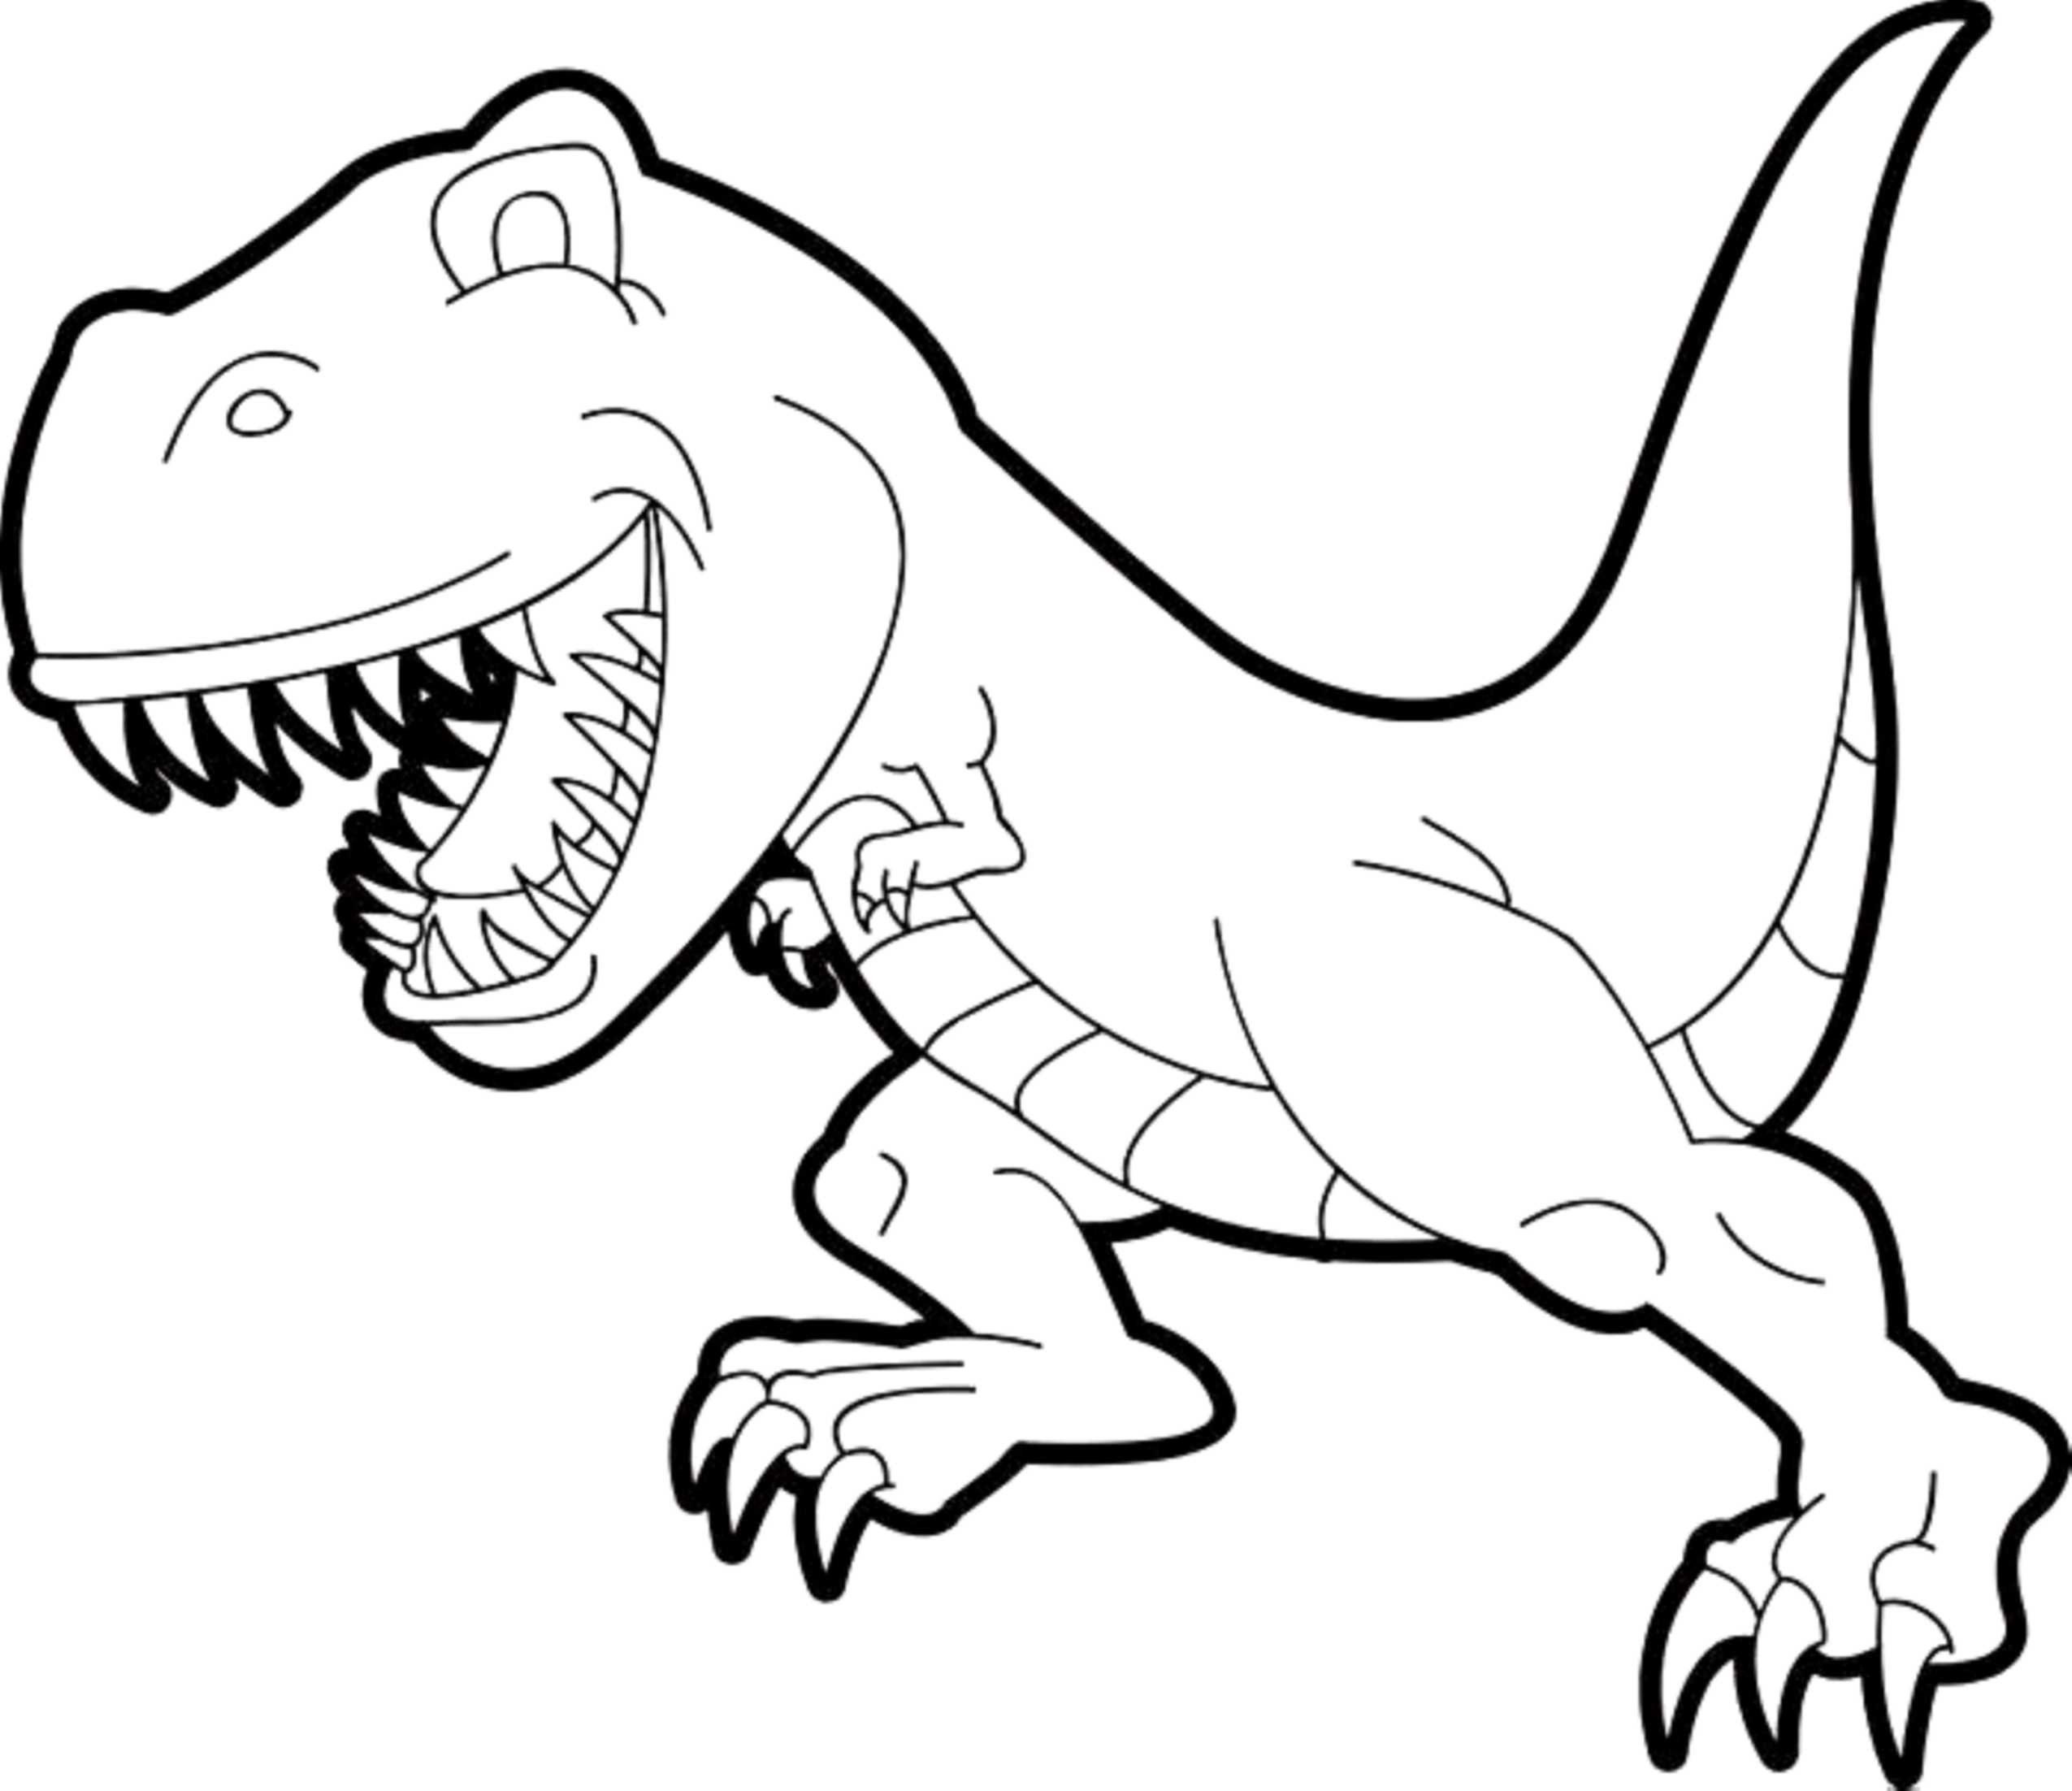 Dinosaurs T Rex Coloring Pages Of Dinosaurs T Rex Coloring Pages Dinosaurs T Rex Coloring Pages Dinosaur Coloring Pages Dinosaur Coloring Animal Coloring Pages